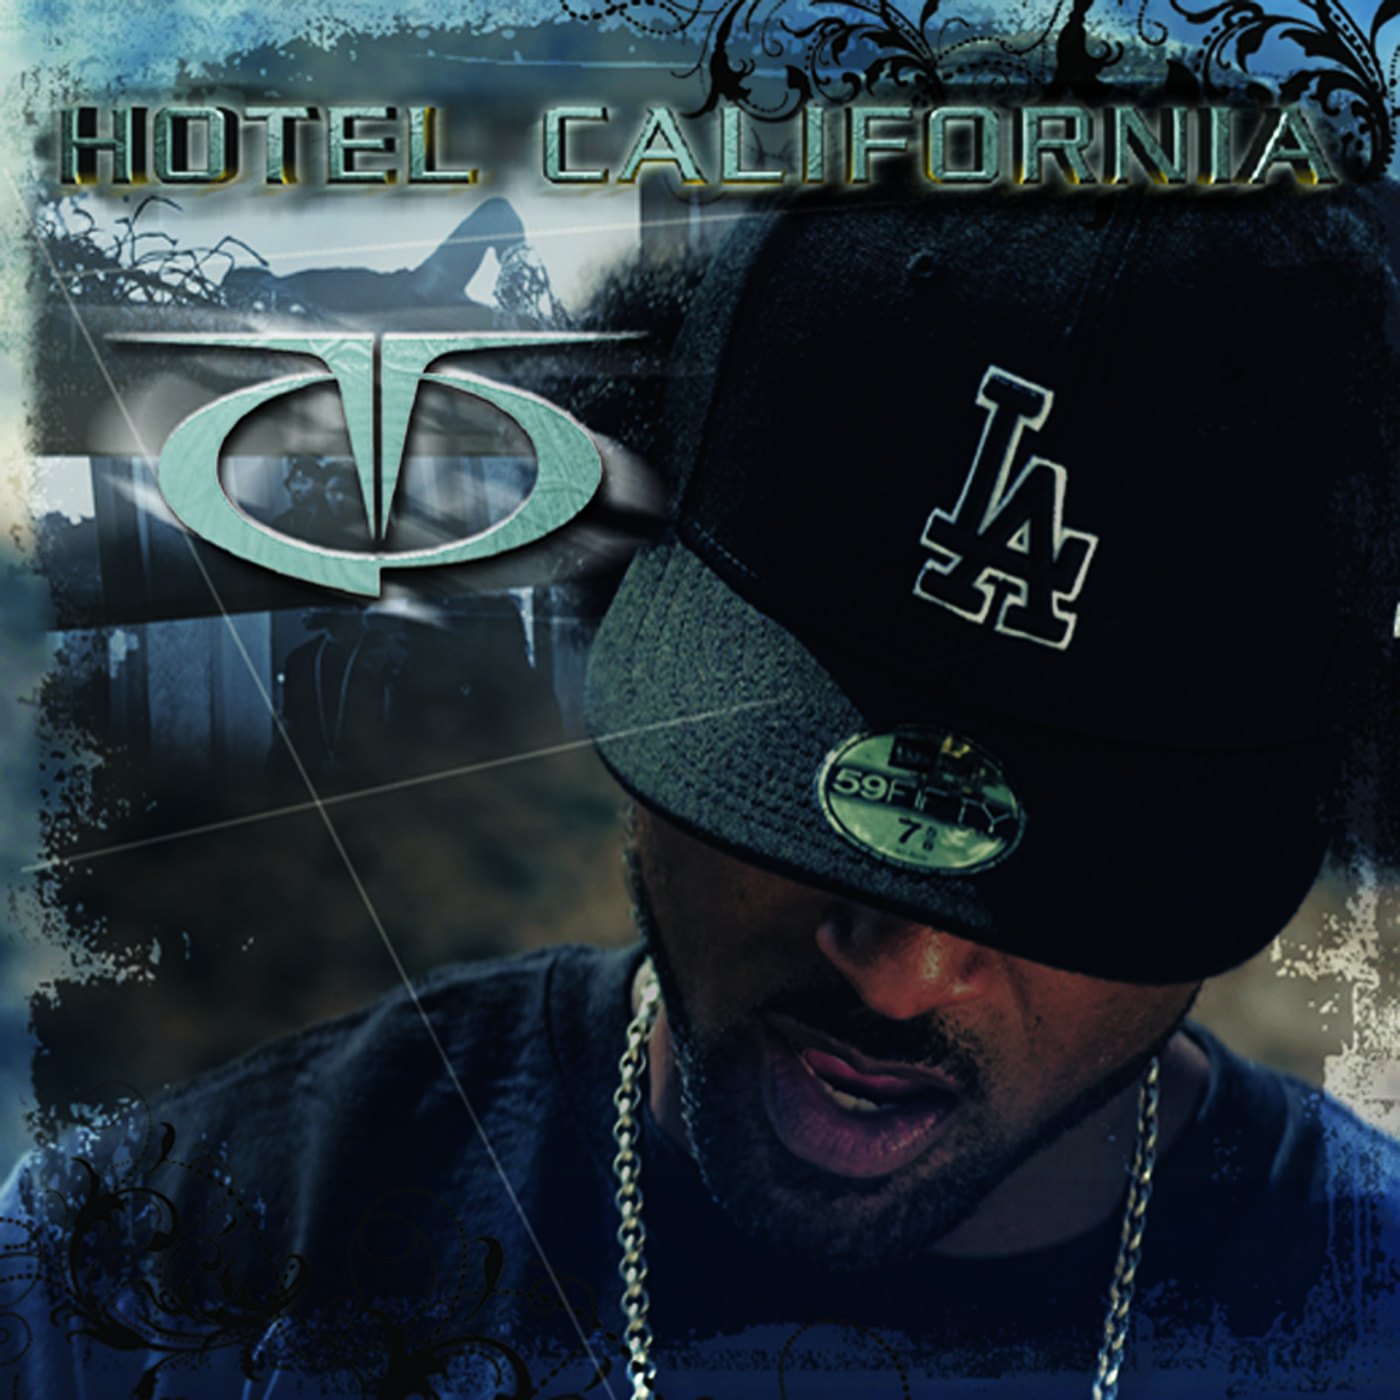 https://i0.wp.com/therealtq.com/wp-content/uploads/2017/01/HOTEL-CALI-SINGLE-COVER-SMALL.jpg?fit=1400%2C1400&ssl=1